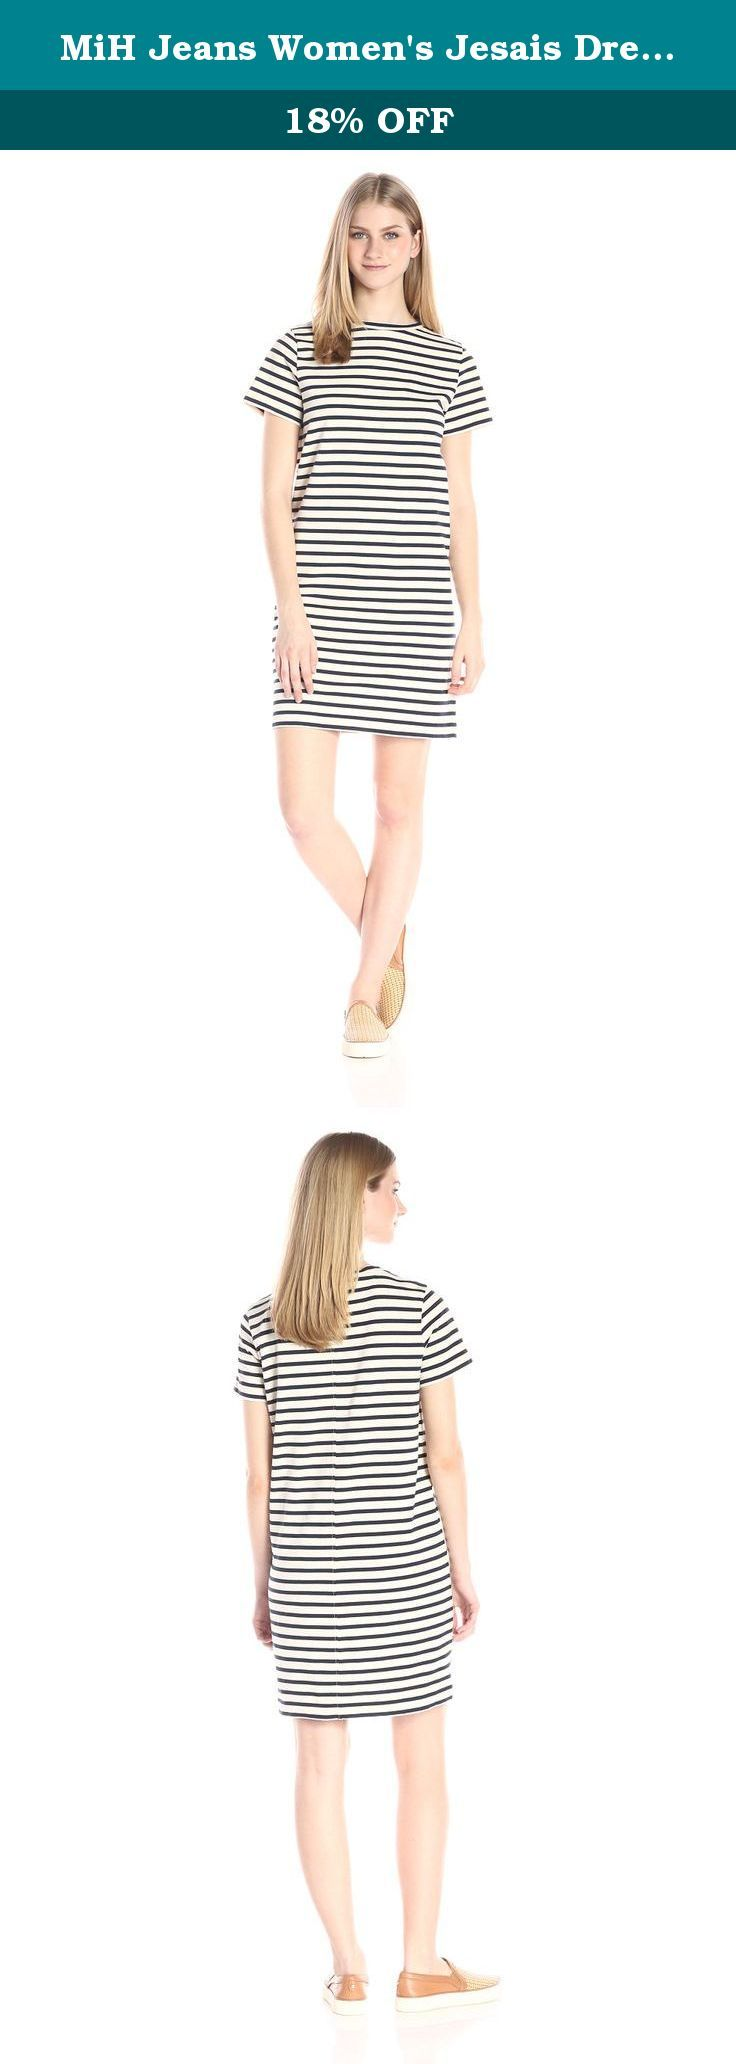 MiH Jeans Women's Jesais Dress, Cream/Navy, Small. The jessie dress is MiH Jeans' traditional nautical top transformed into the perfect dress. Featuring a pared-back, streamlined cut with a demure boat neck. The dress hits just above the knee with 3/4 sleeves. The fabric is created in a lightweight version of classic breton jersey in 100 percent cotton with a cream/navy stripe.